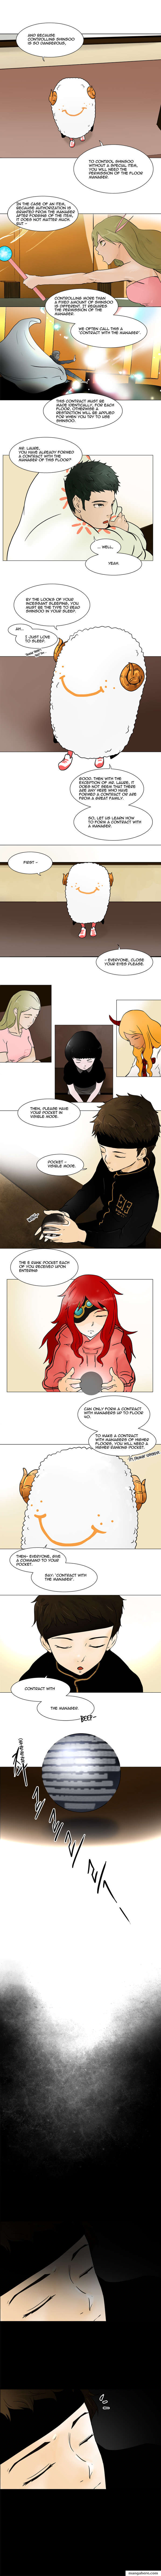 Tower of God 29 Page 2